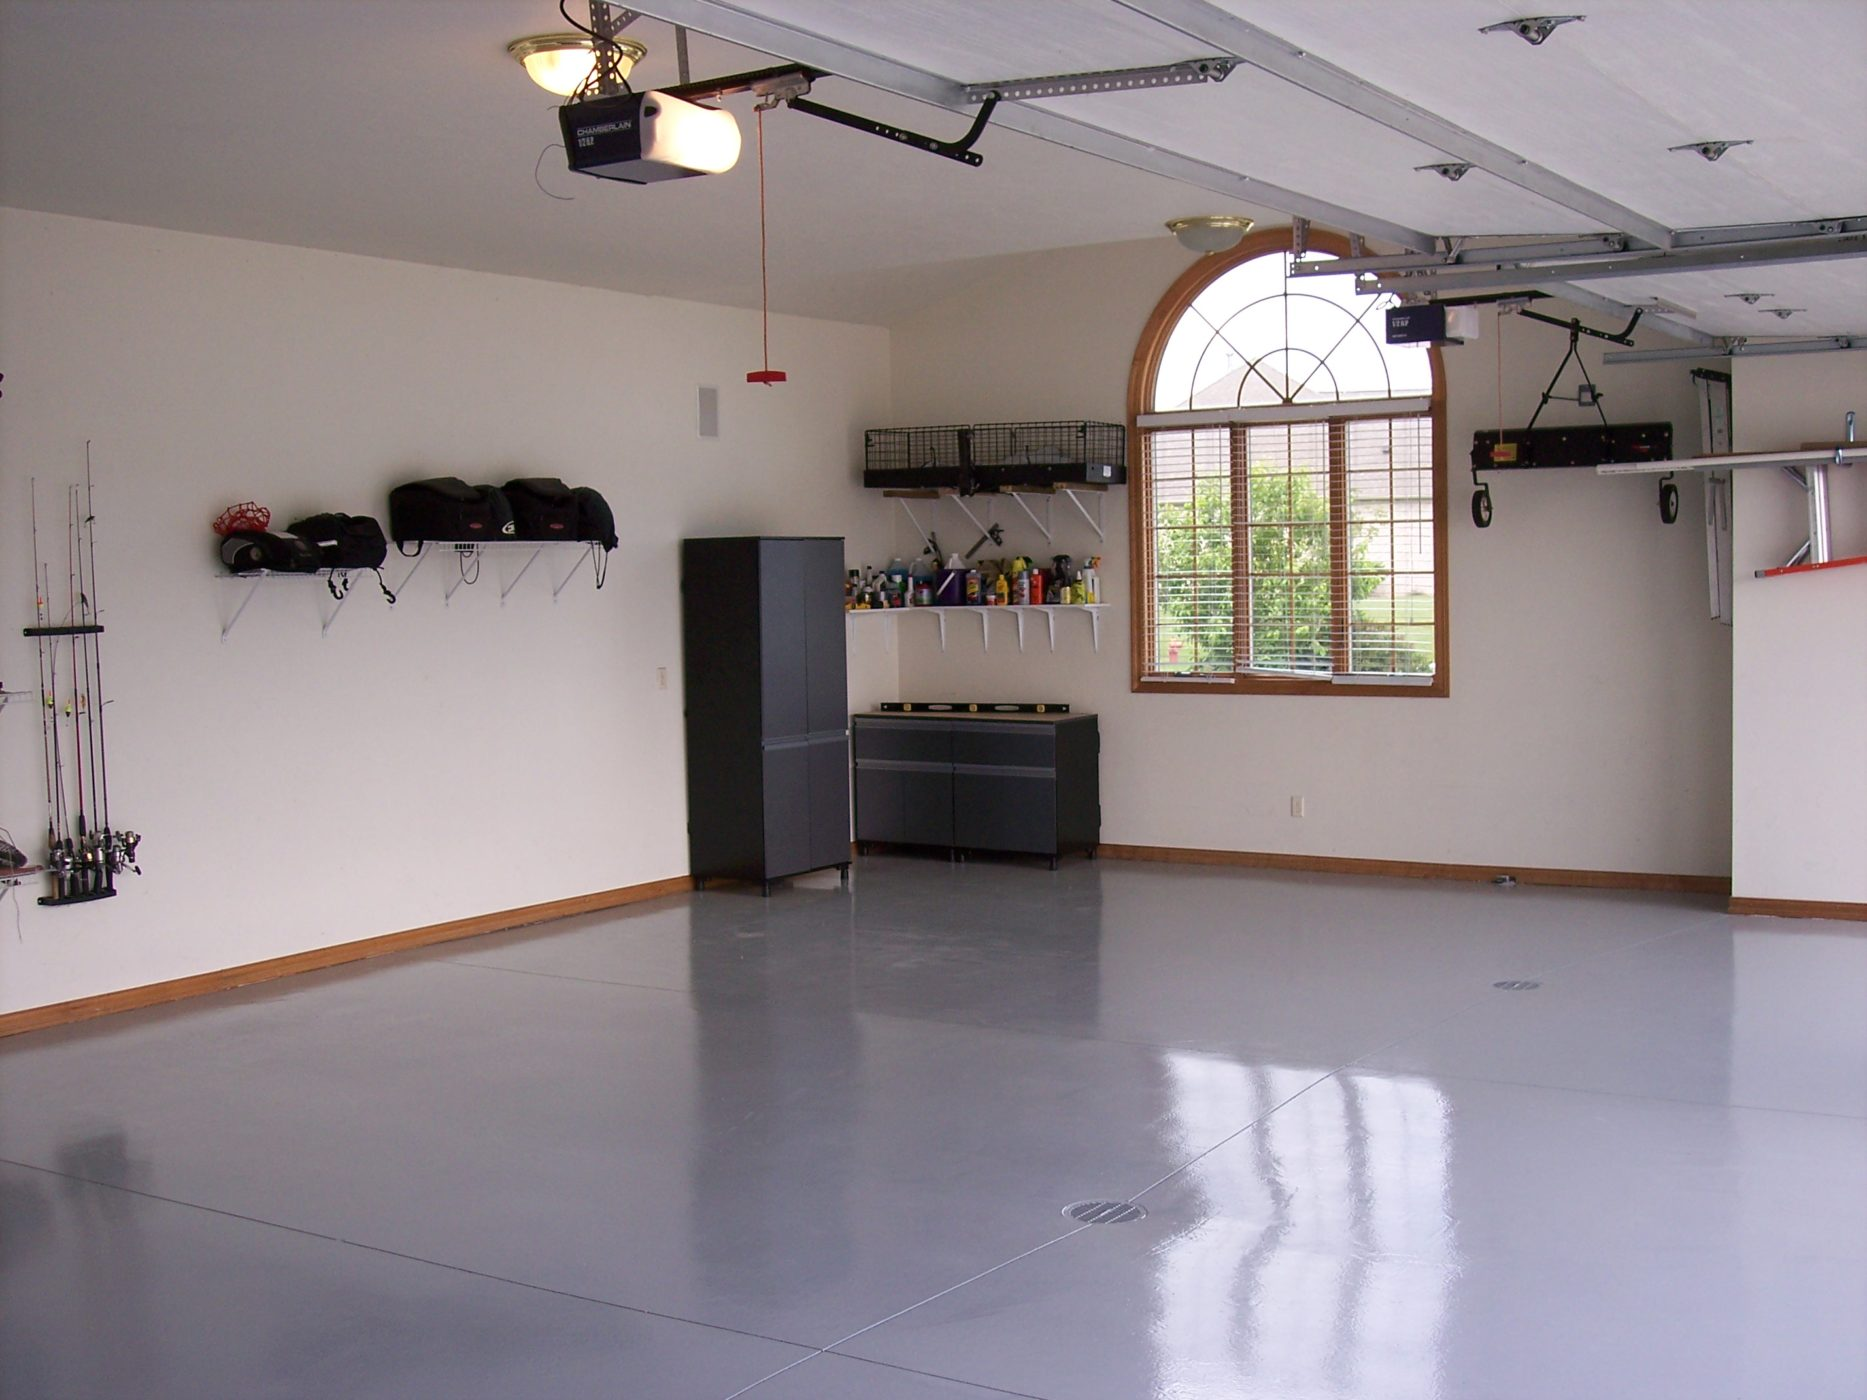 Armorclad Garage Floor Epoxy Best Garage Floor Epoxy Kit